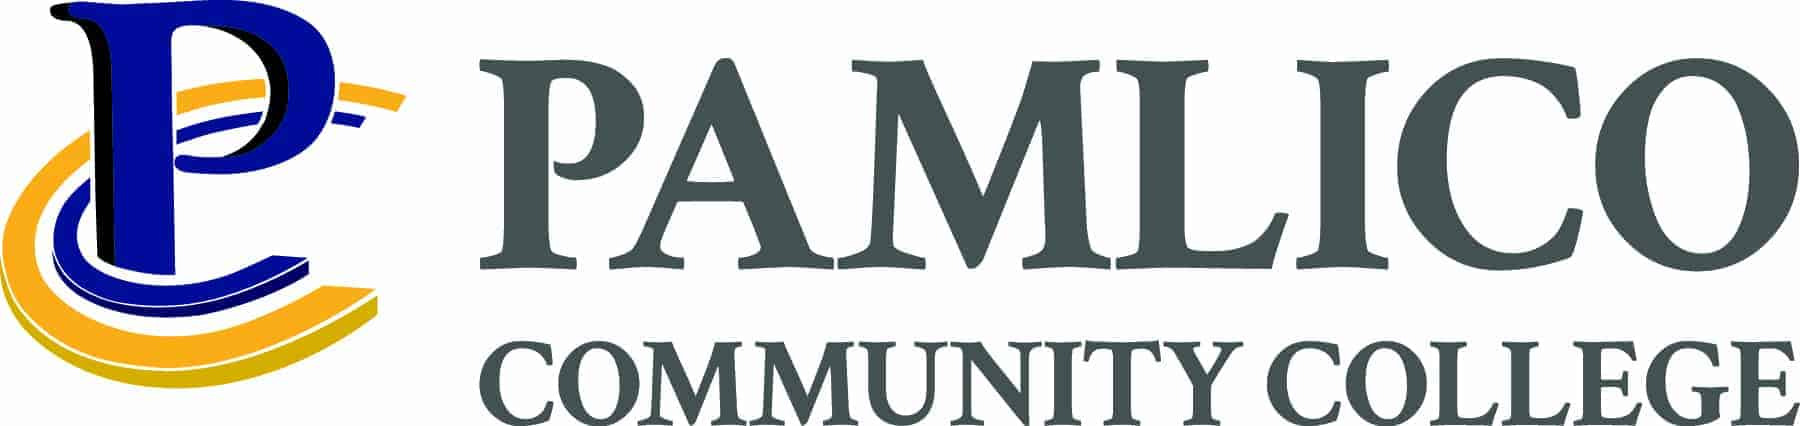 pamlico community college logo 8048